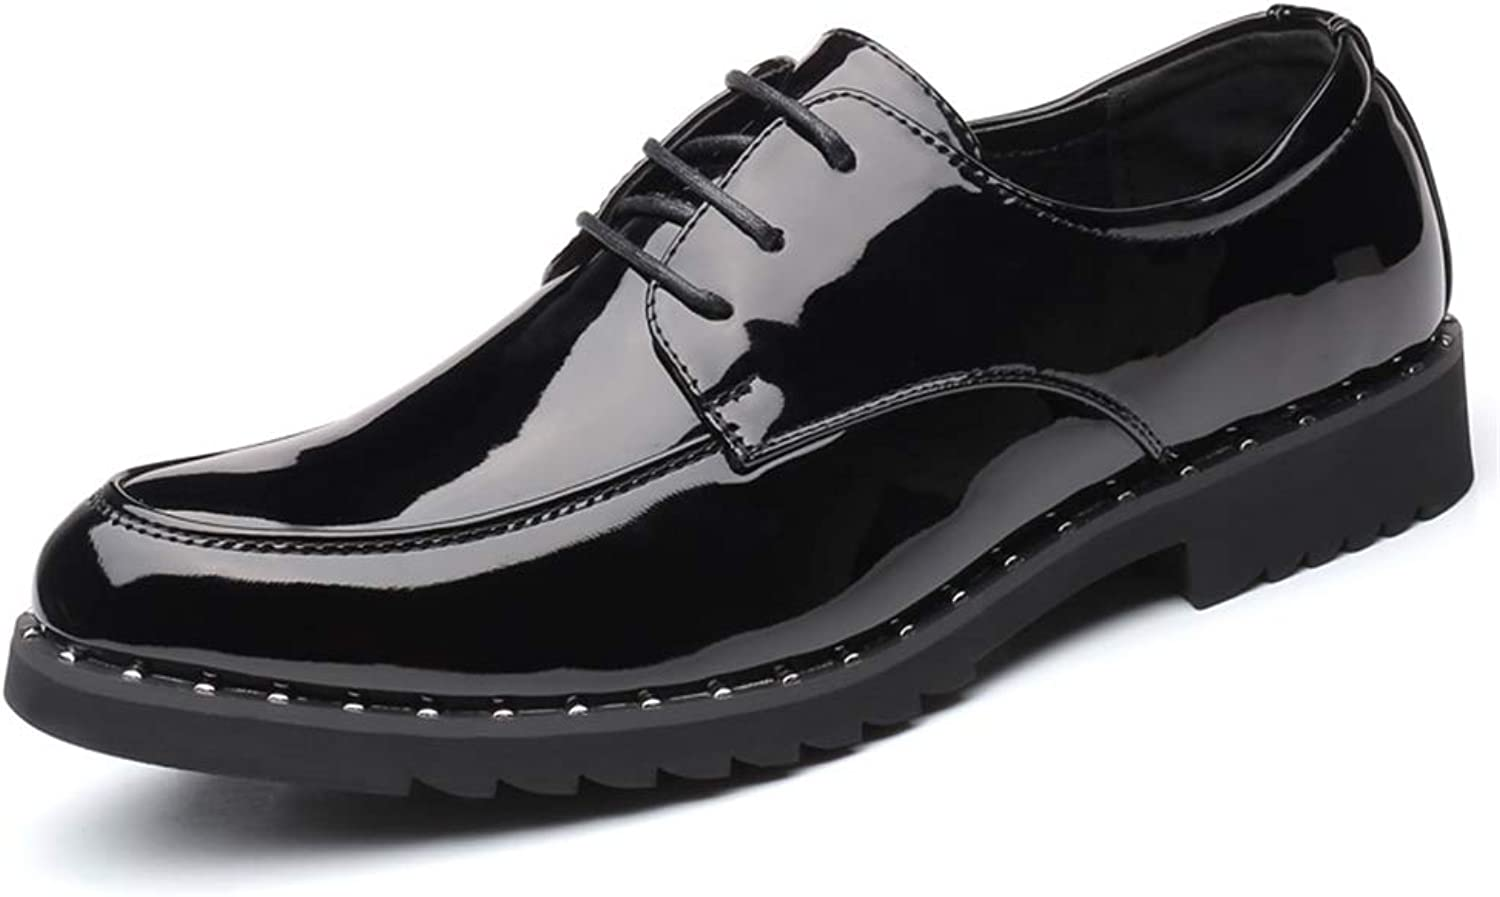 JUJIANFU-shoes Men's Fashion Business Oxford Casual Easy Outsole Simple Classic Pure Vividness Patent Leather Formal shoes